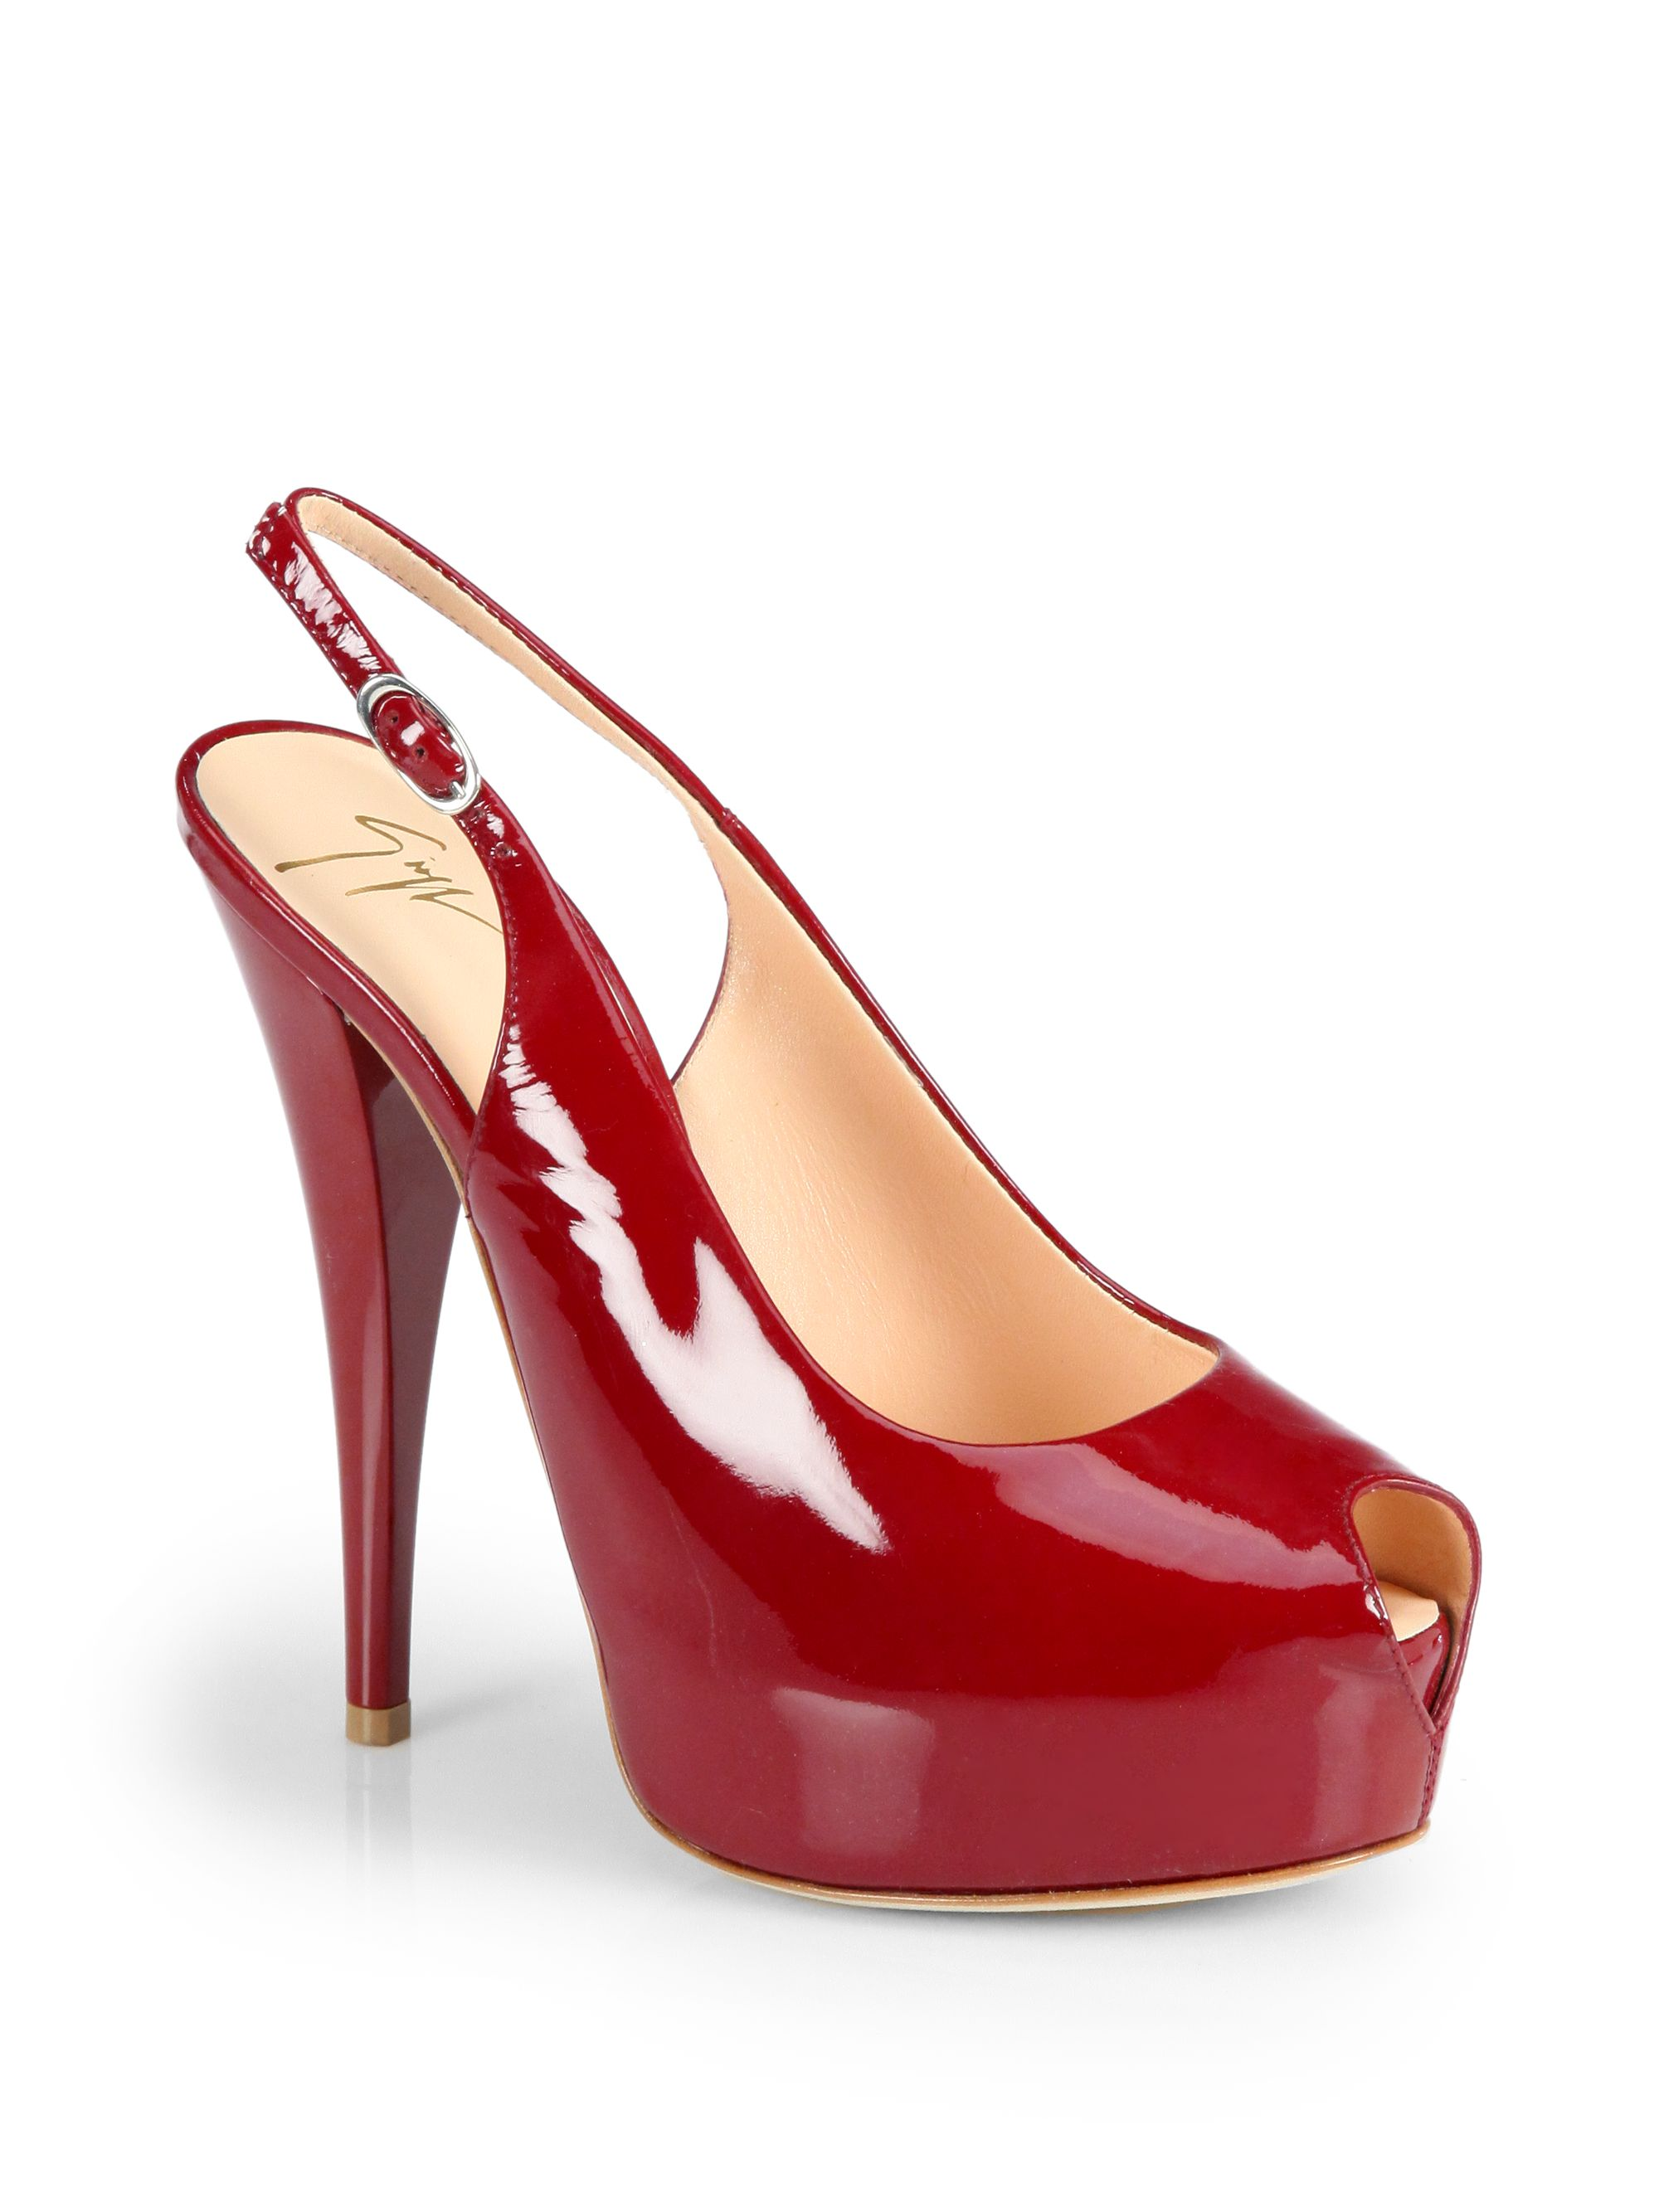 Guess Patent Leather Shoes